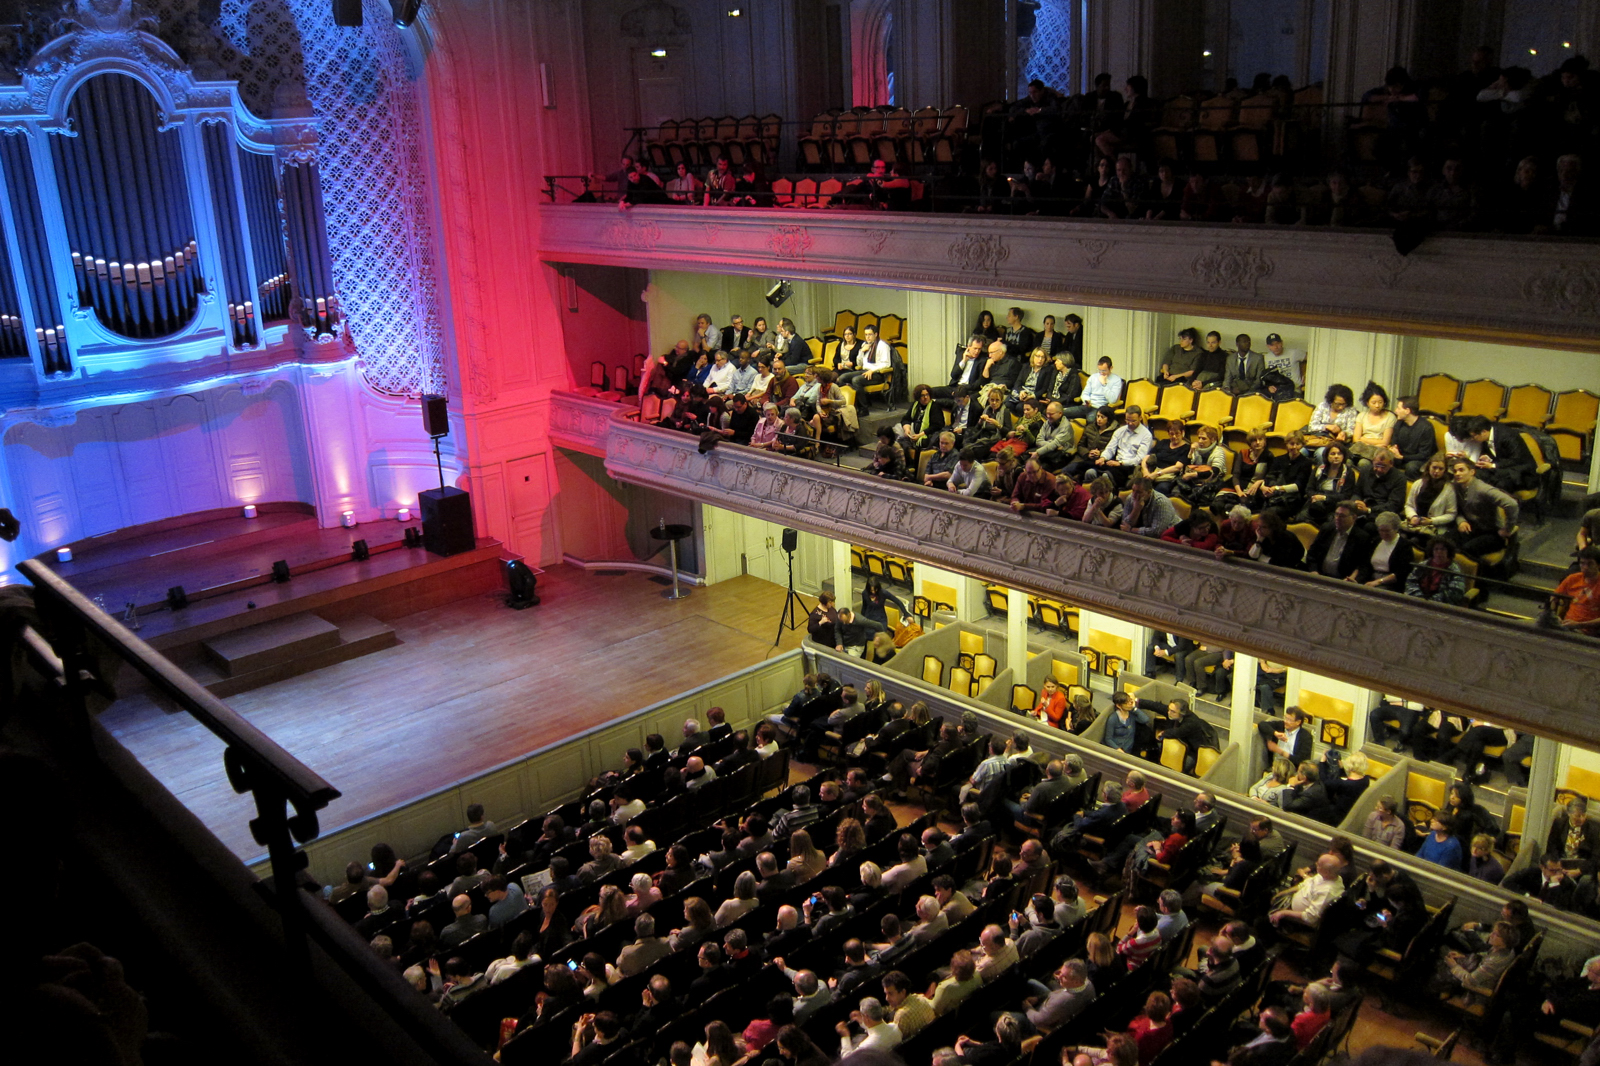 Salle gaveau 28 images salle gaveau salle gaveau abc for Cevennes carrelage ales